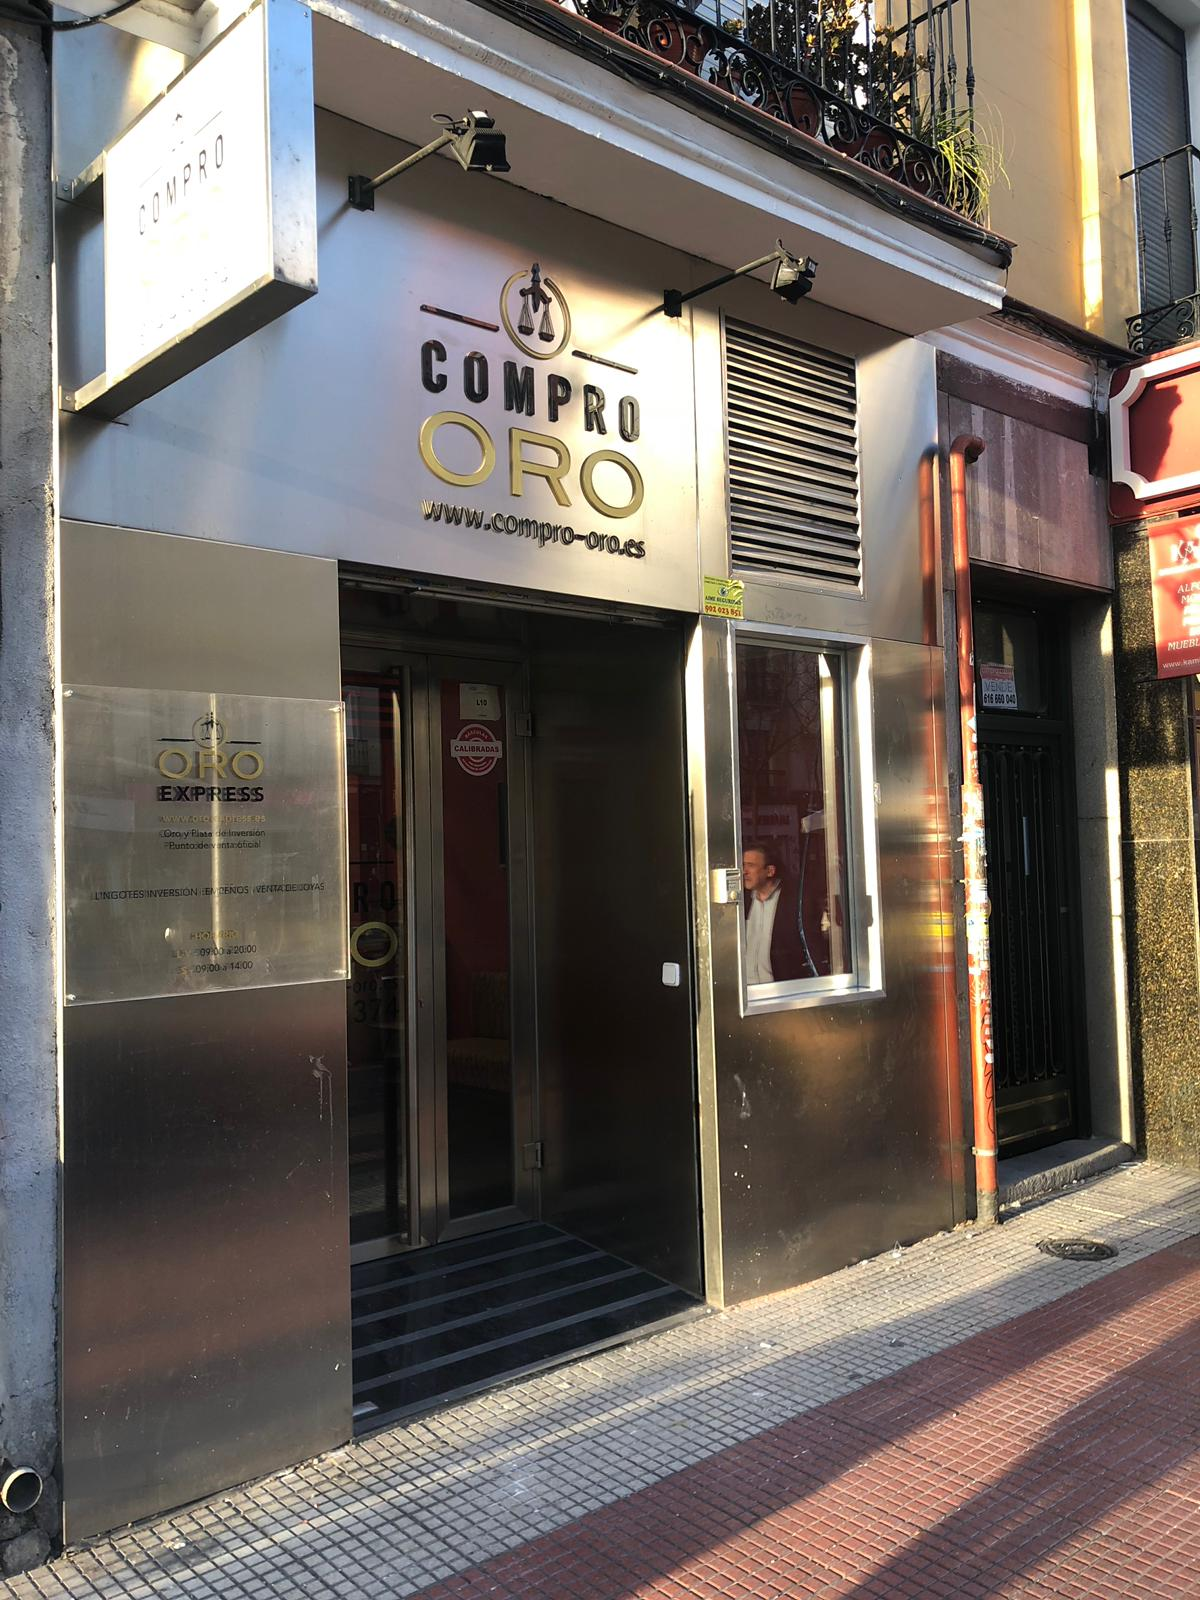 Madrid – Compro oro – Eloy Gonzalo